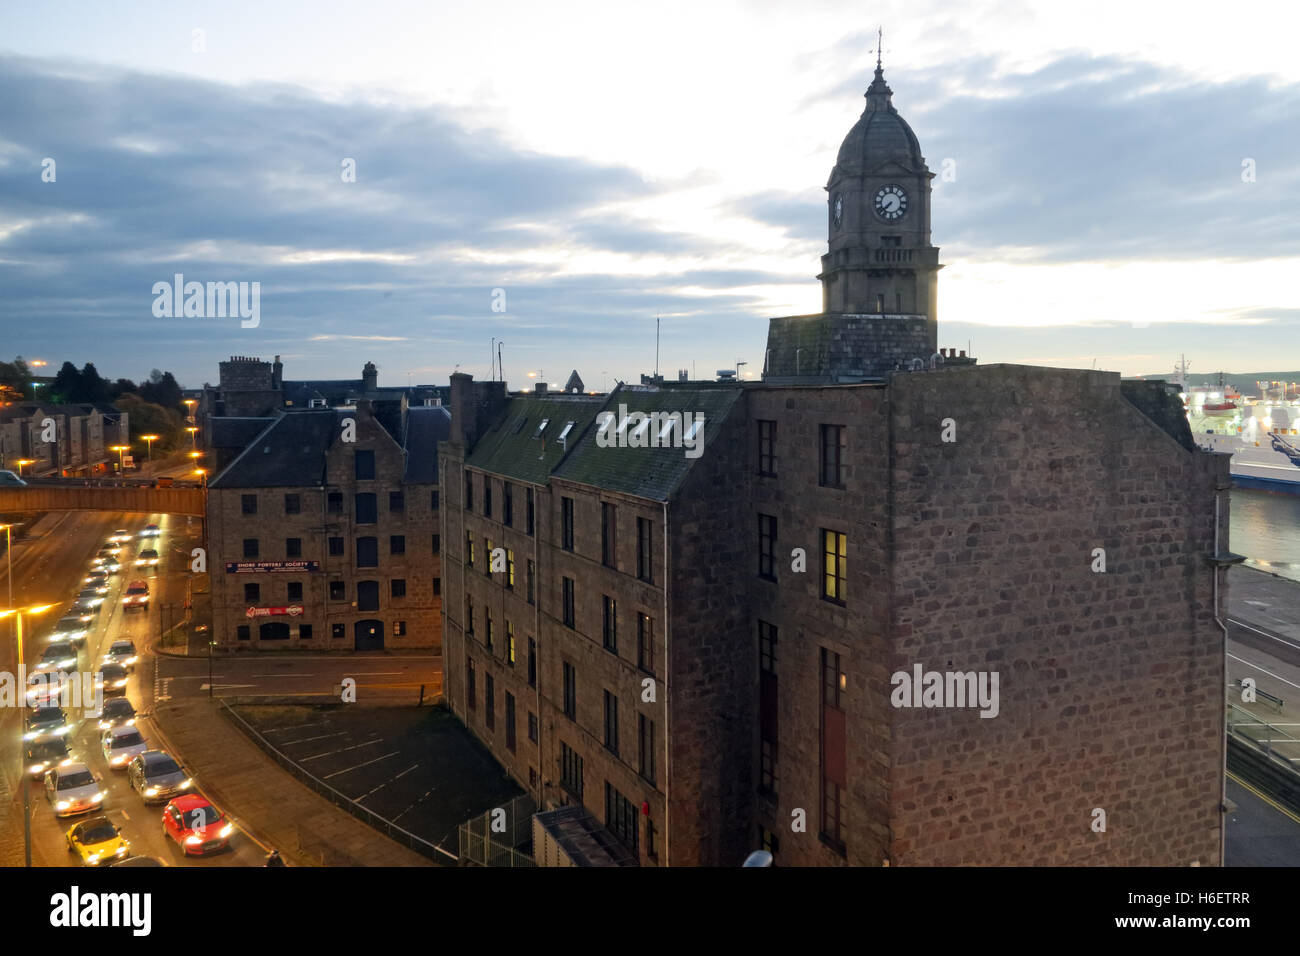 Aberdeen Harbour at dusk, Aberdeenshire,Scotland,UK - Stock Image